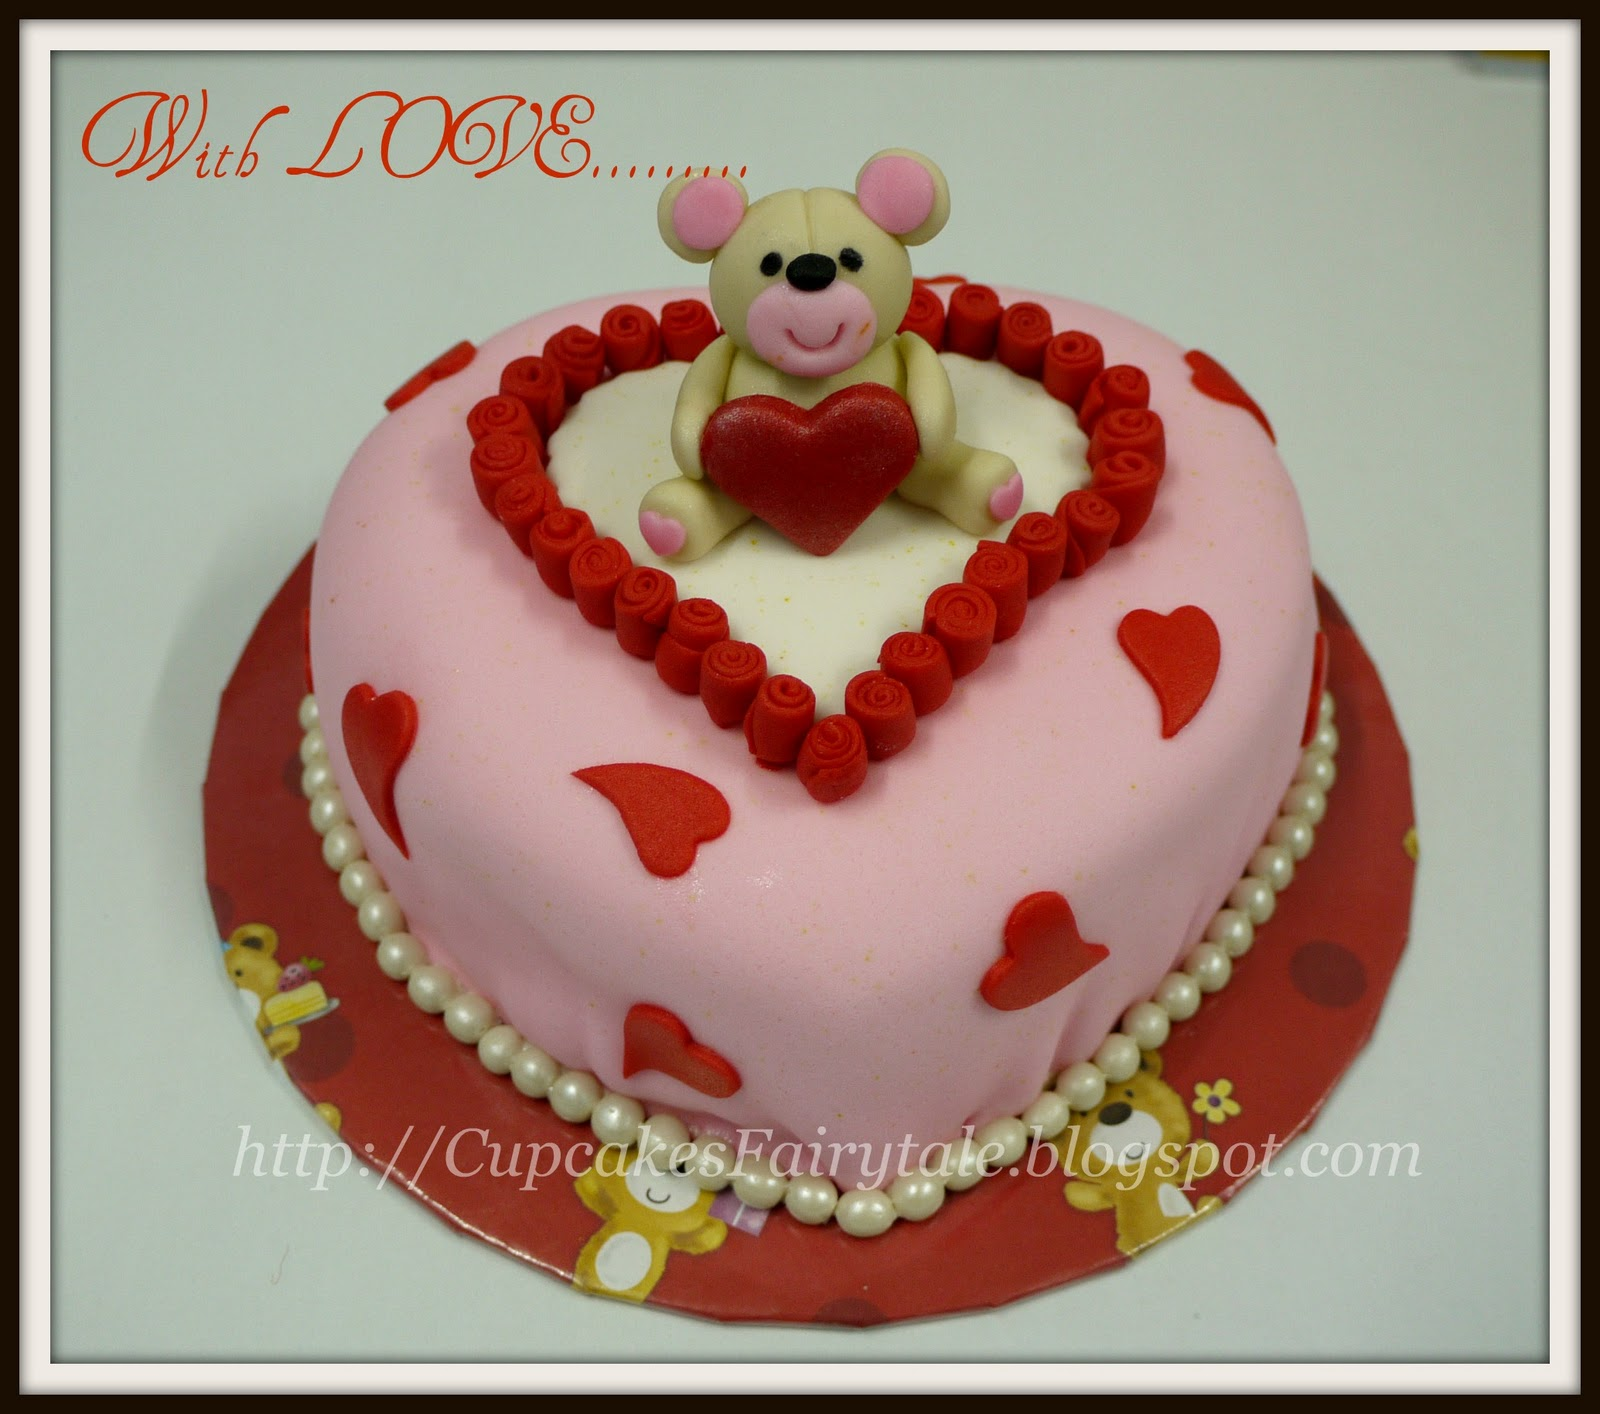 Cake Images For A Friend : Cupcakes Fairytale: A THOUGHTFUL BIRTHDAY CAKE